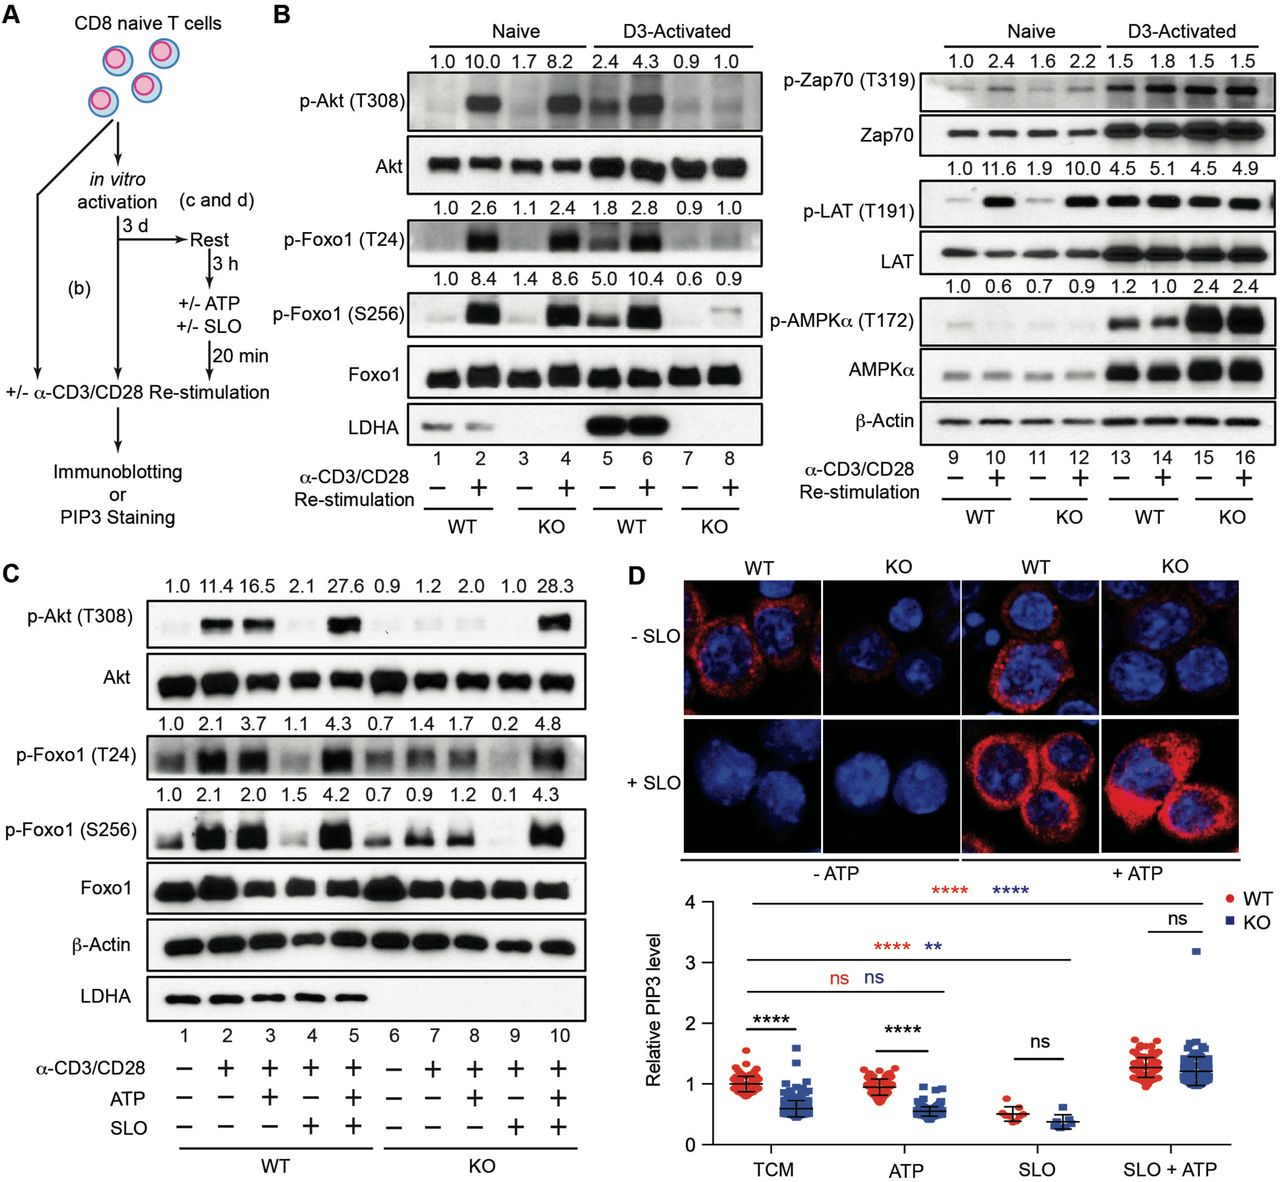 Reduced glycolytic ATP production accounts for defective PI3K/Akt/Foxo1 signaling in LDHA-deficient T cells following antigen stimulation ( A ) A schematic depicting how naïve CD8 + T cells were treated for assessment of kinase signaling and PIP3 generation. ( B ) Naïve CD8 + T cells were isolated from Ldha fl/fl (wild-type, WT) and CD4 Cre Ldha fl/fl (knockout, KO) mice, and stimulated with 5 μg/ml anti-CD3, 2 μg/ml anti-CD28, and 100 U/ml IL-2 for 3 days. Day-3 activated T cells and freshly isolated naïve WT and KO CD8 + T cells were left untreated, or labeled with biotinylated anti-CD3 and anti-CD28 and re-stimulated by streptavidin crosslinking. Cell lysates were prepared and immunoblotted for p-Akt (T308), Akt, p-Foxo1 (T24), p-Foxo1 (S256), Foxo1, LDHA, p-Zap70 (T319), Zap70, p-LAT (T191), LAT, p-AMPKα (T172), AMPKα, and β-Actin. Normalized expression of p-Akt (T308) to Akt, p-Foxo1 (T24) or p-Foxo1 (S256) to Foxo1, p-Zap70 (T319) to Zap70, p-LAT (T191) to LAT, and p-AMPKα (T172) to AMPKα were marked. ( C ) Day-3 activated WT and KO CD8 + T cells were collected, rested in RPMI medium for 3 hours, and incubated in the absence or presence of 10 mM ATP and/or 250 U/ml Streptolysin O (SLO). T cells were subsequently re-stimulated with biotinylated anti-CD3 and anti-CD28 through streptavidin crosslinking, and immunoblotted for p-Akt (T308), Akt, p-Foxo1 (T24), p-Foxo1 (S256), Foxo1, LDHA, and β-Actin. Normalized expression of p-Akt (T308) to Akt, p-Foxo1 (T24) or p-Foxo1 (S256) to Foxo1 were marked. ( D ) Representative immunofluorescent images of PIP3 and its quantification in WT and KO CD8 + T cells after receiving the indicated treatments as described in ( C ). Unpaired t tests for the measurements between the two groups ( D ): **p